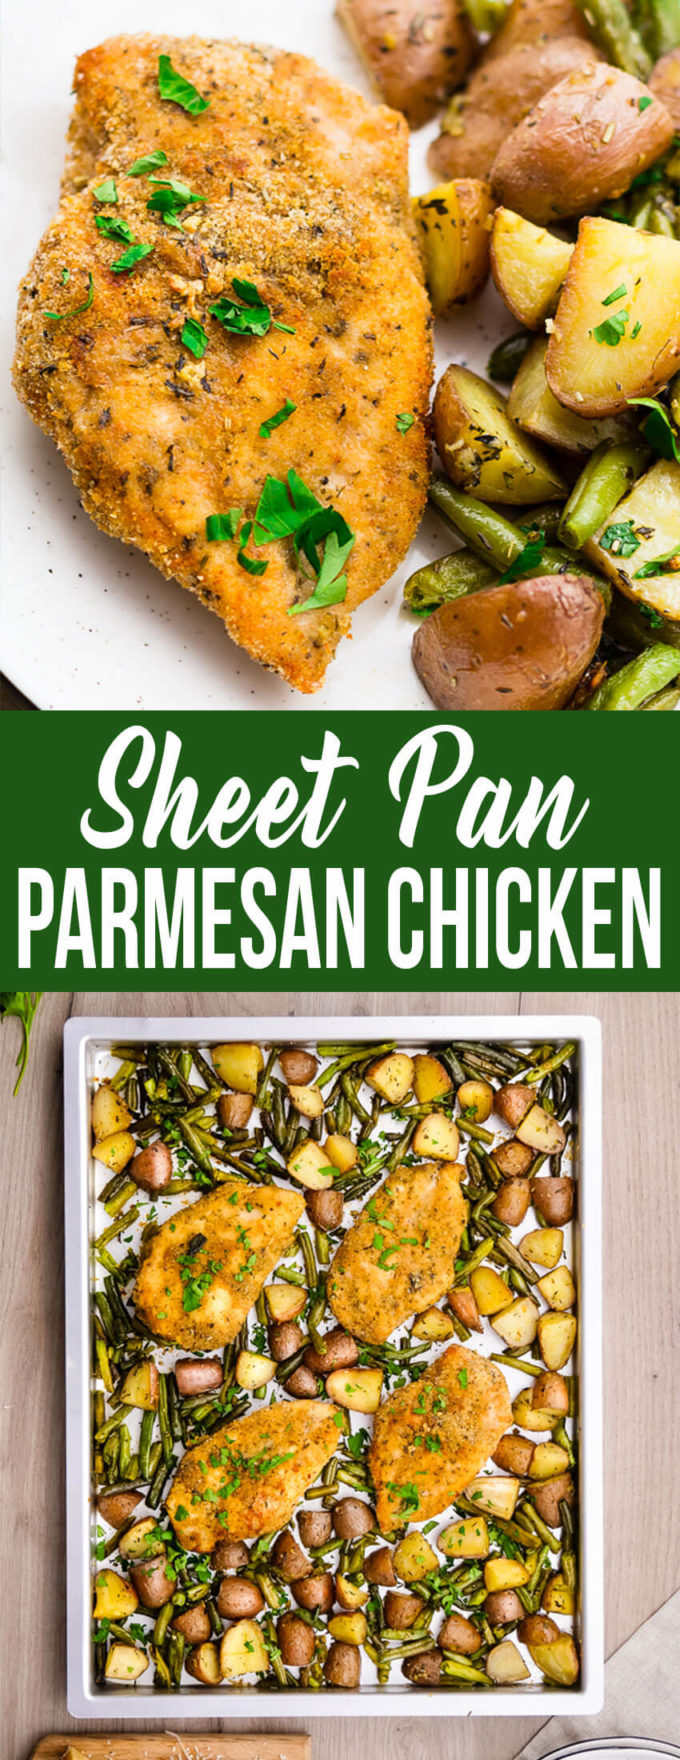 Parmesan Chicken and Veggies: Tasty, simple, and quick and efficient 5-star meal on a baking sheet.